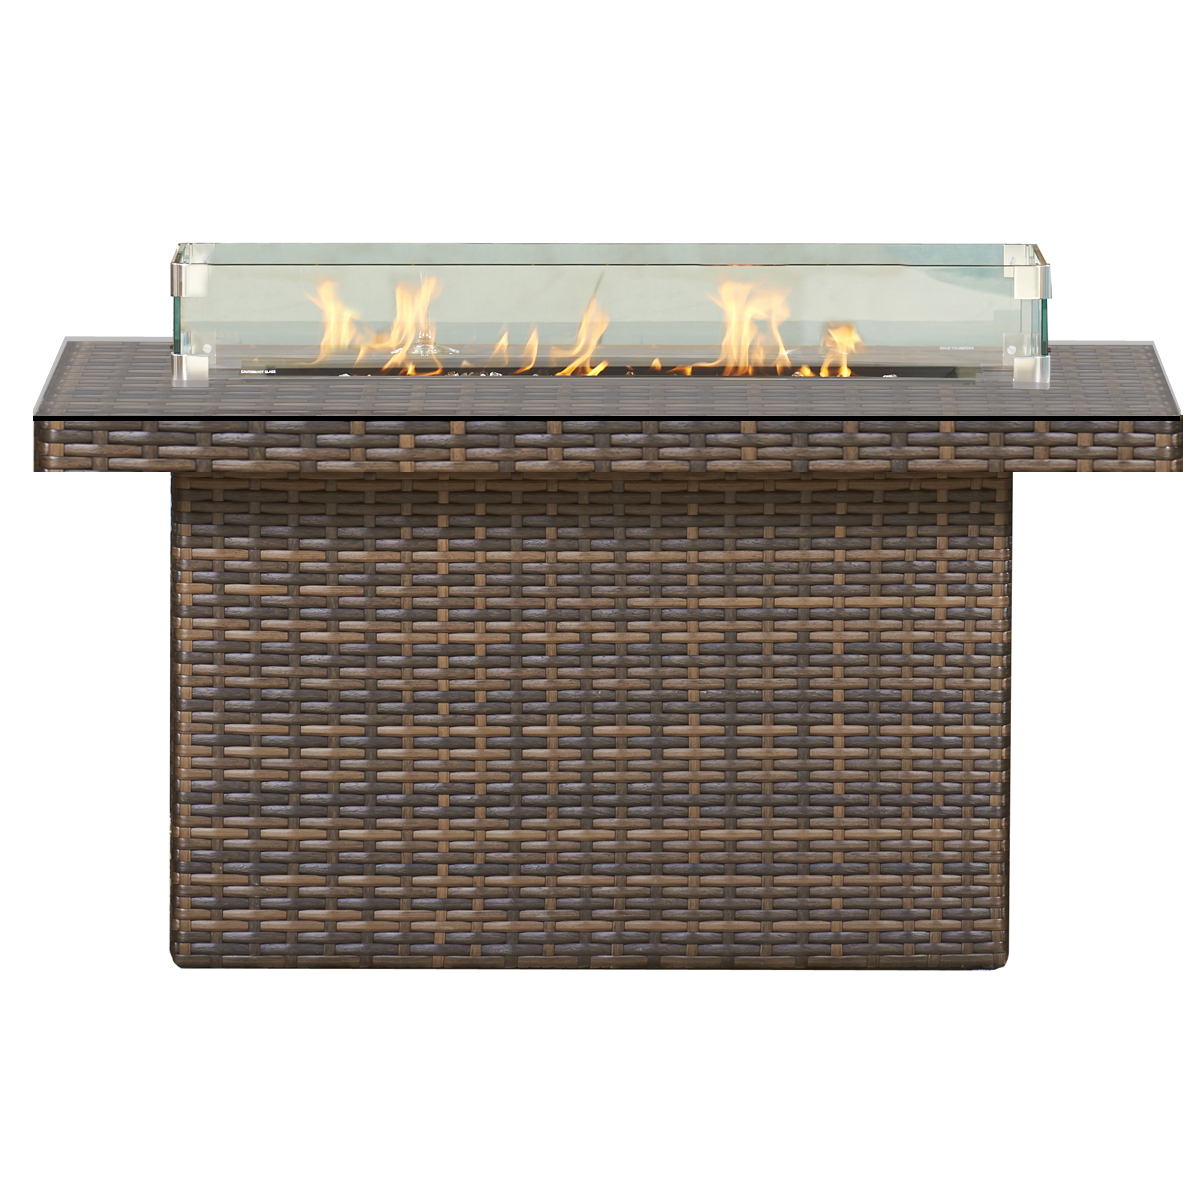 48″x36″WOVEN BASE WITH RECTAGULAR GLASS TOP FIRE PIT RC1510 $1359.00